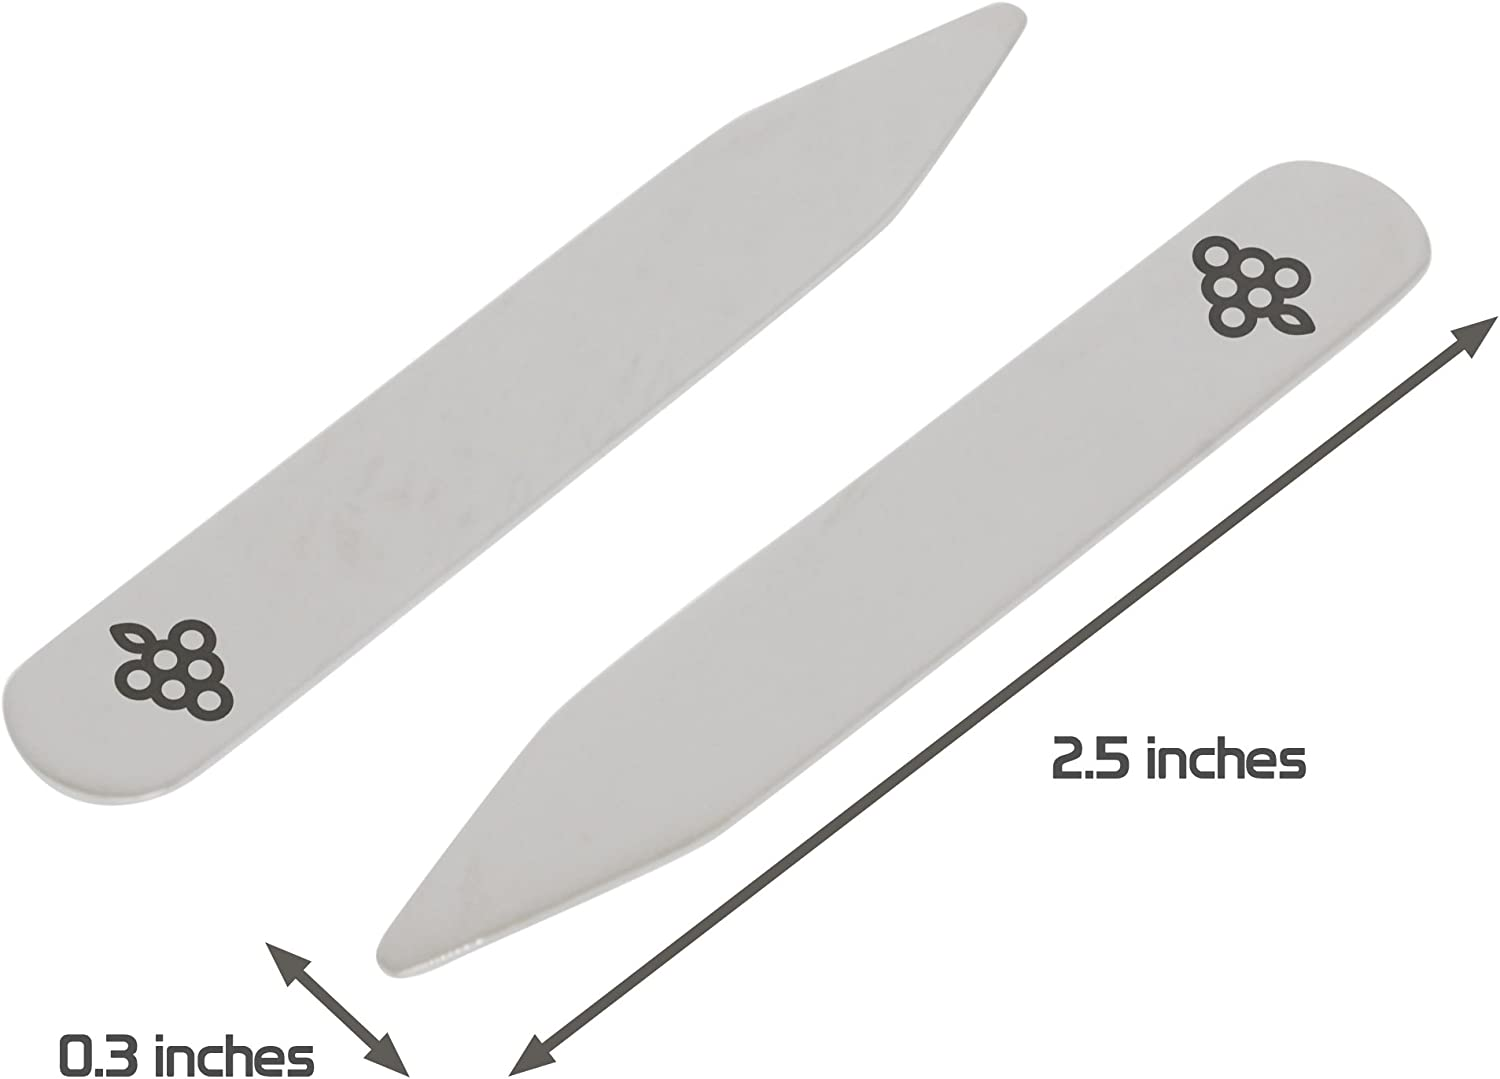 MODERN GOODS SHOP Stainless Steel Collar Stays With Laser Engraved Grapes Design Made In USA 2.5 Inch Metal Collar Stiffeners